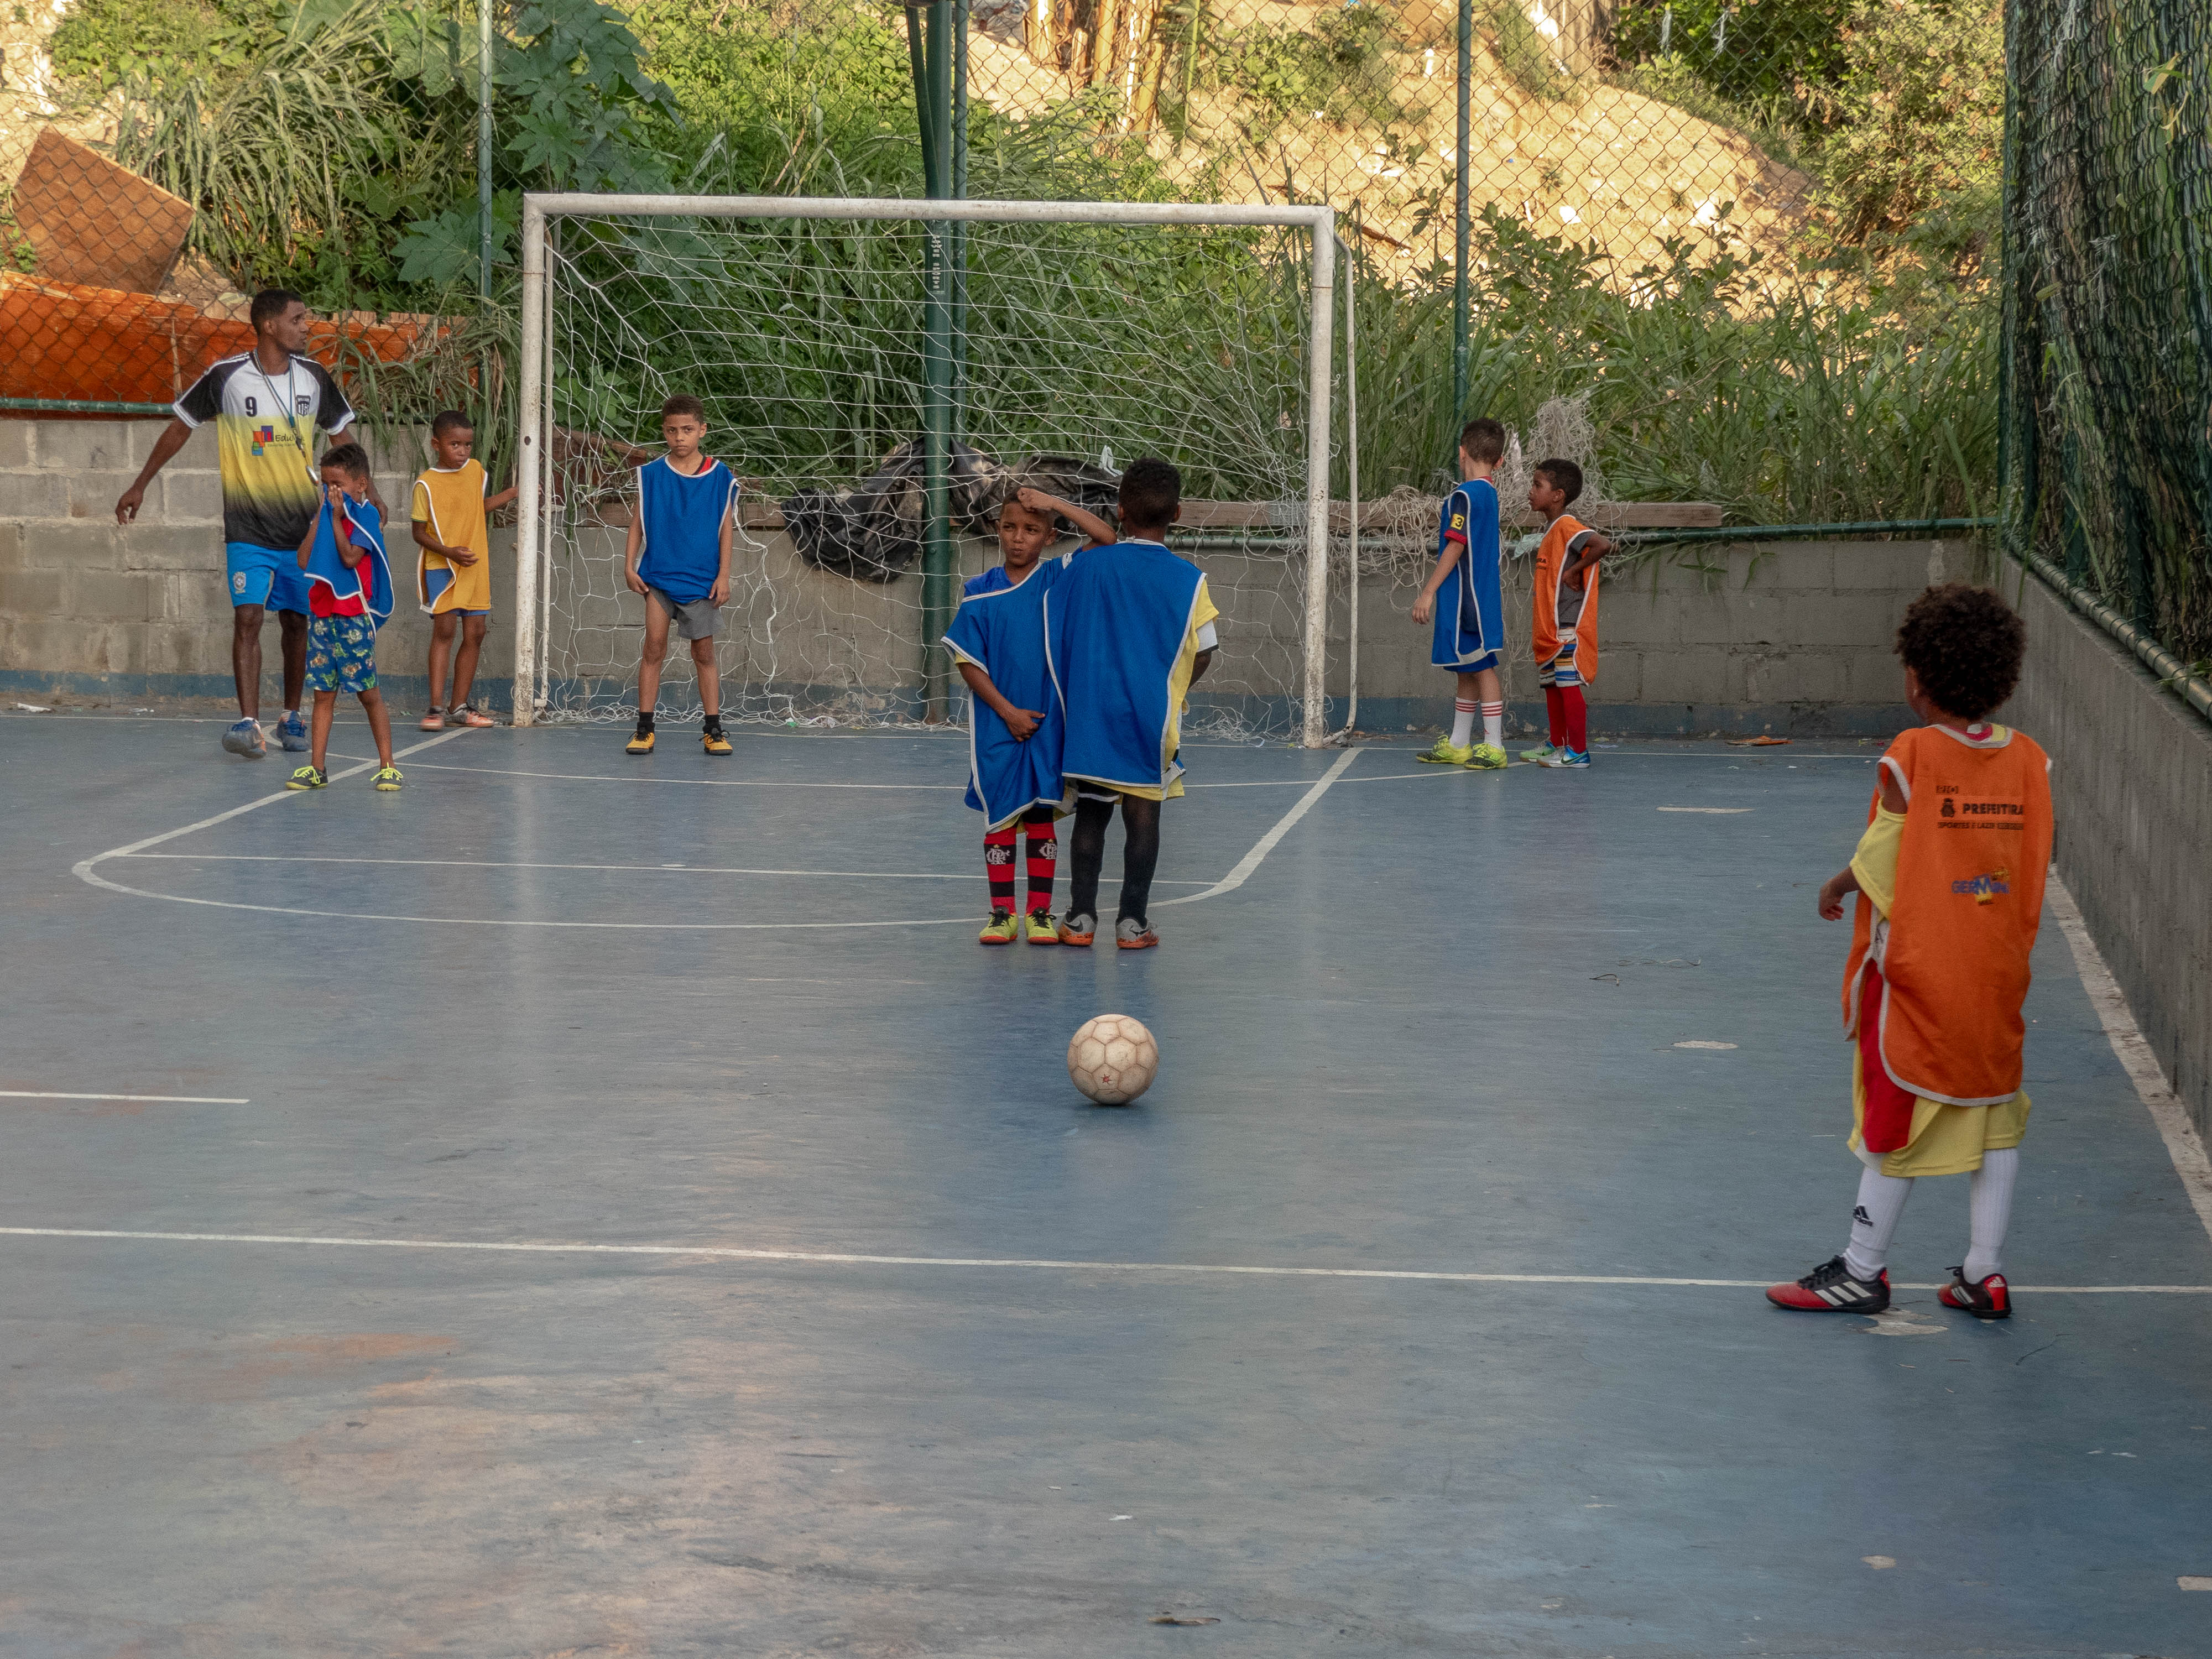 Student on EduMais's Education-Based Football Program gets ready to take a free kick on the pitch in Cantagalo